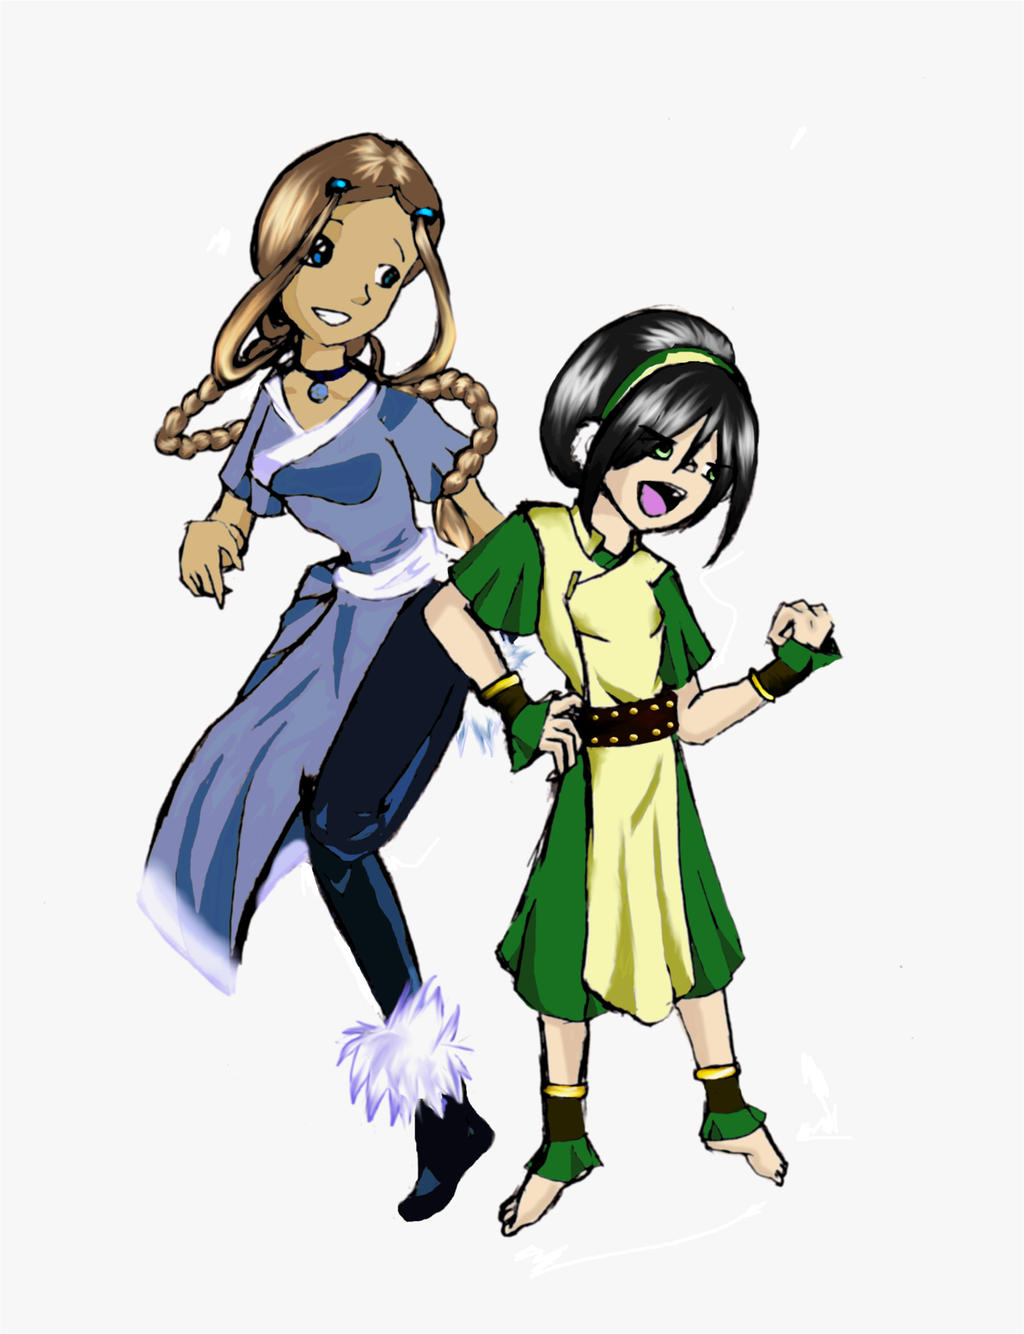 Toph and Katara Masters Dance by mr35mm on DeviantArt